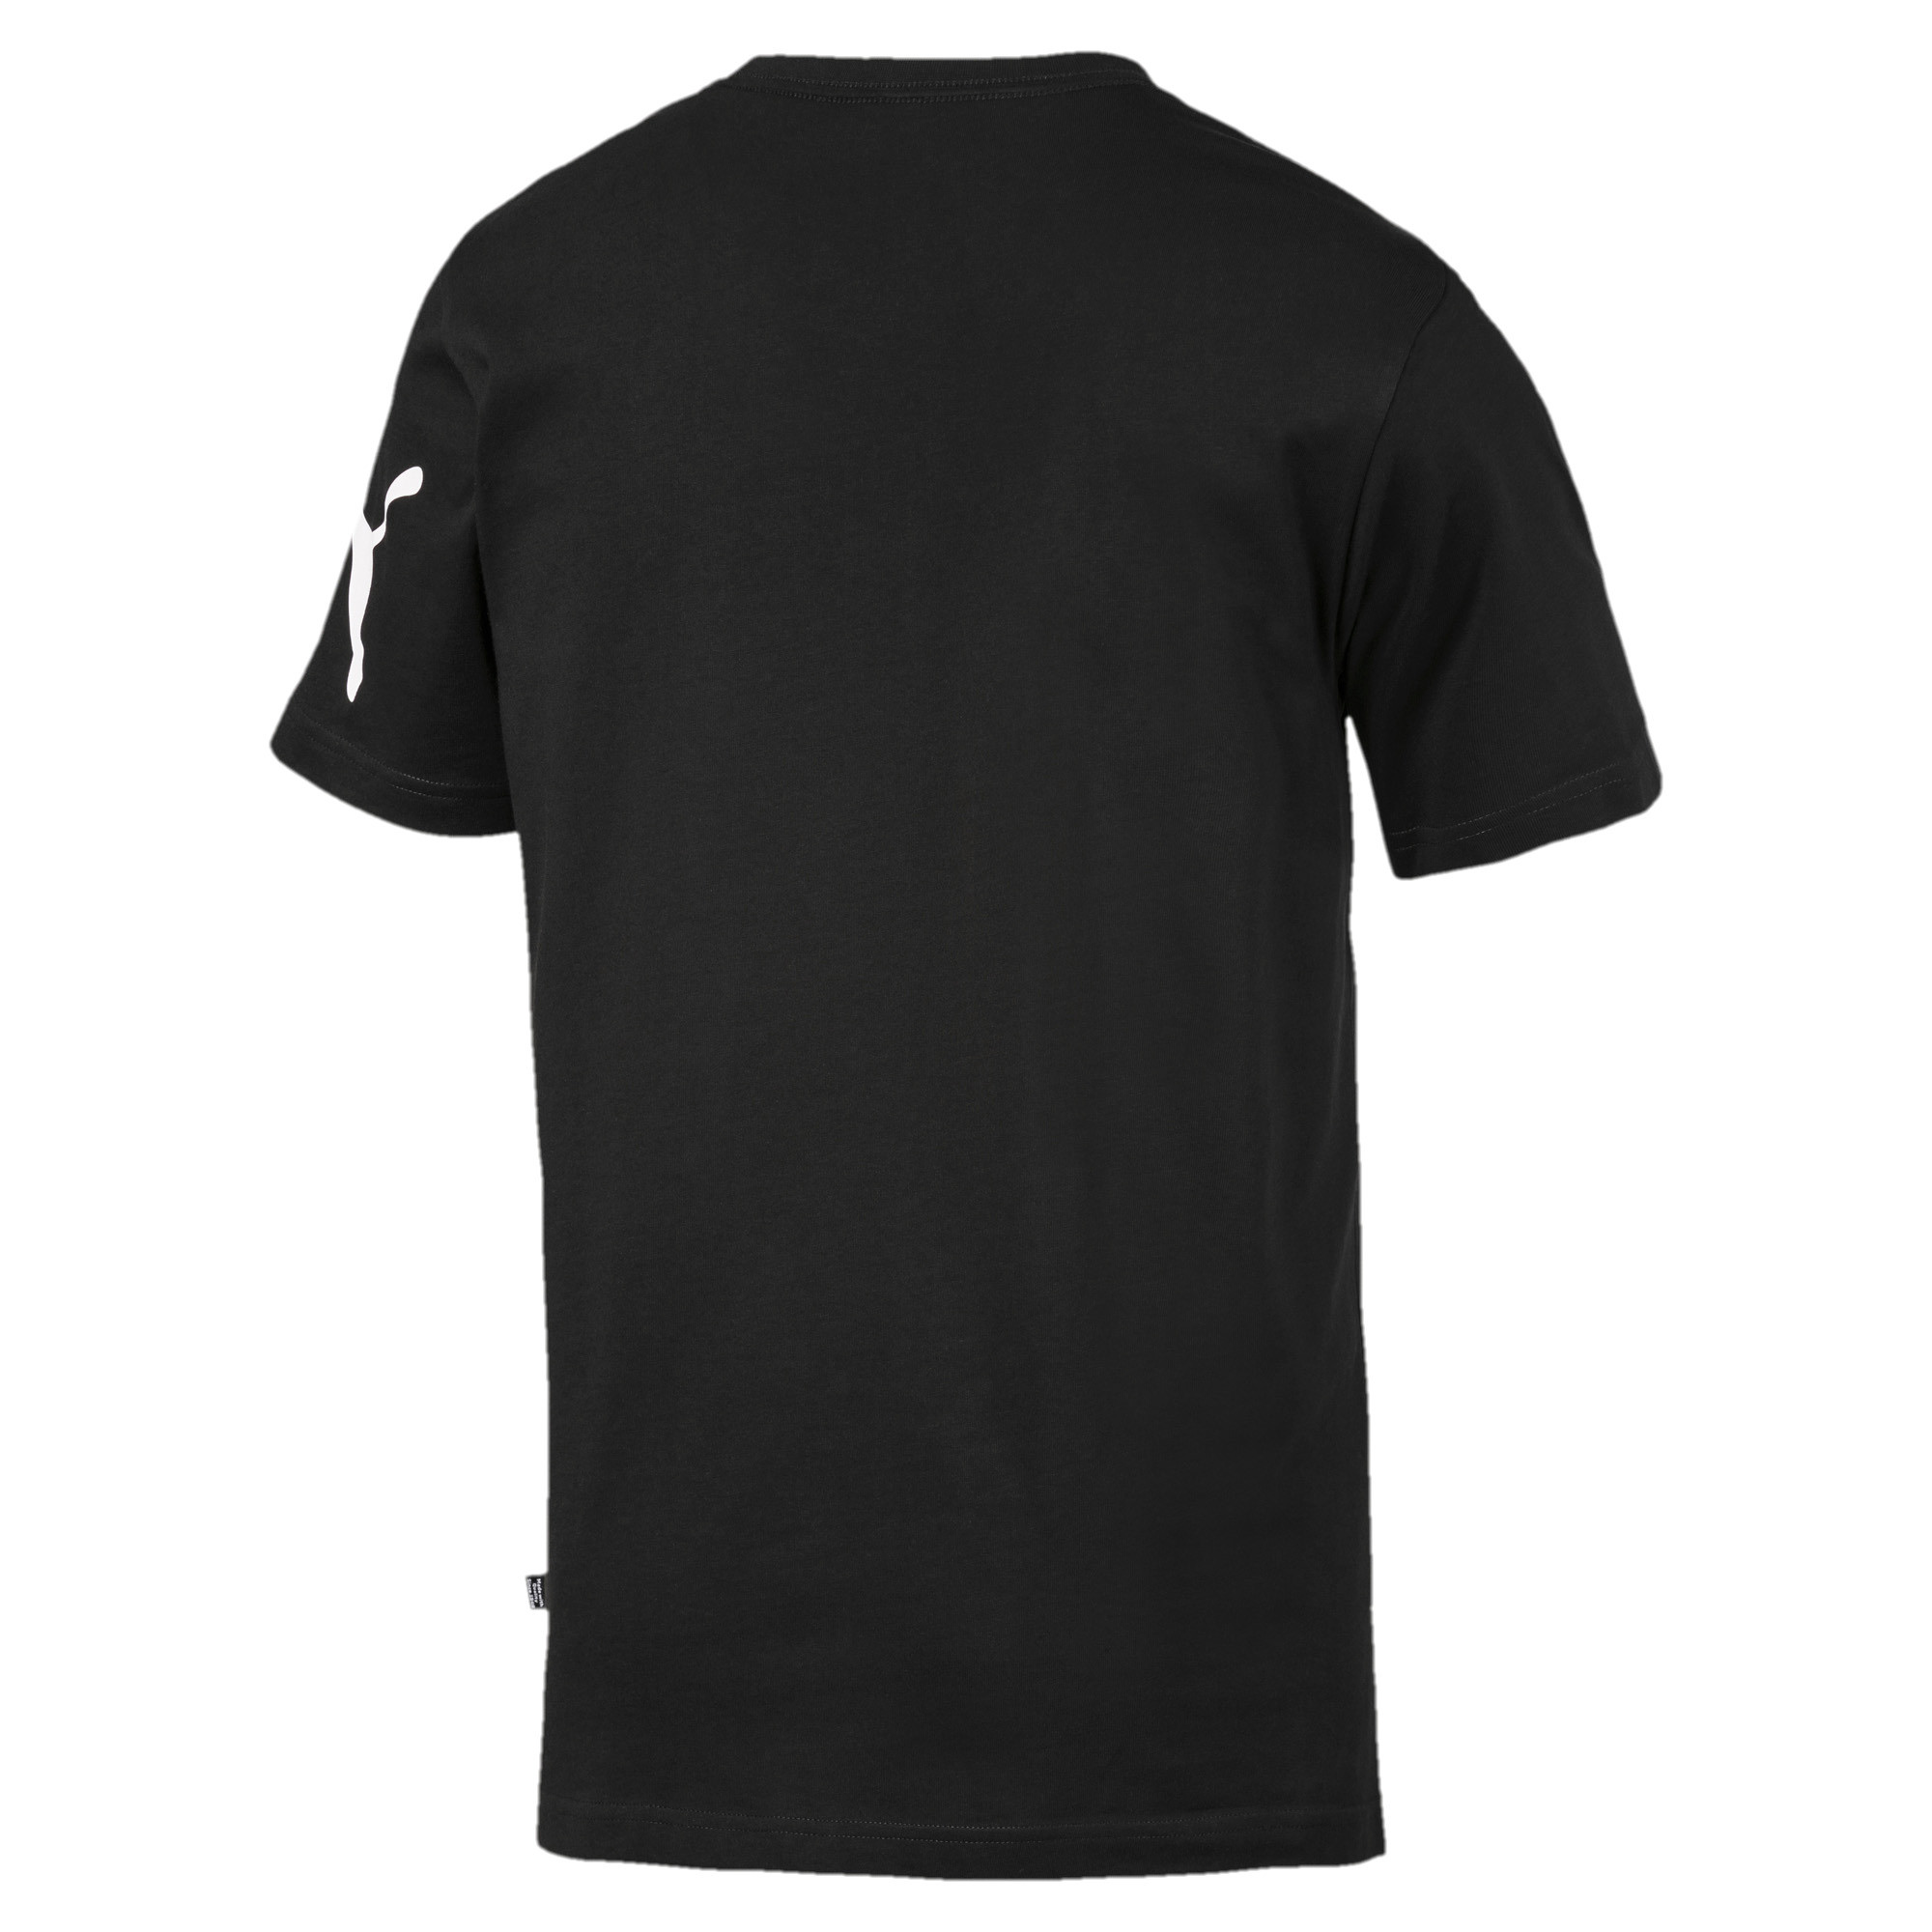 PUMA-Big-Logo-Men-039-s-Tee-Men-Tee-Basics thumbnail 16